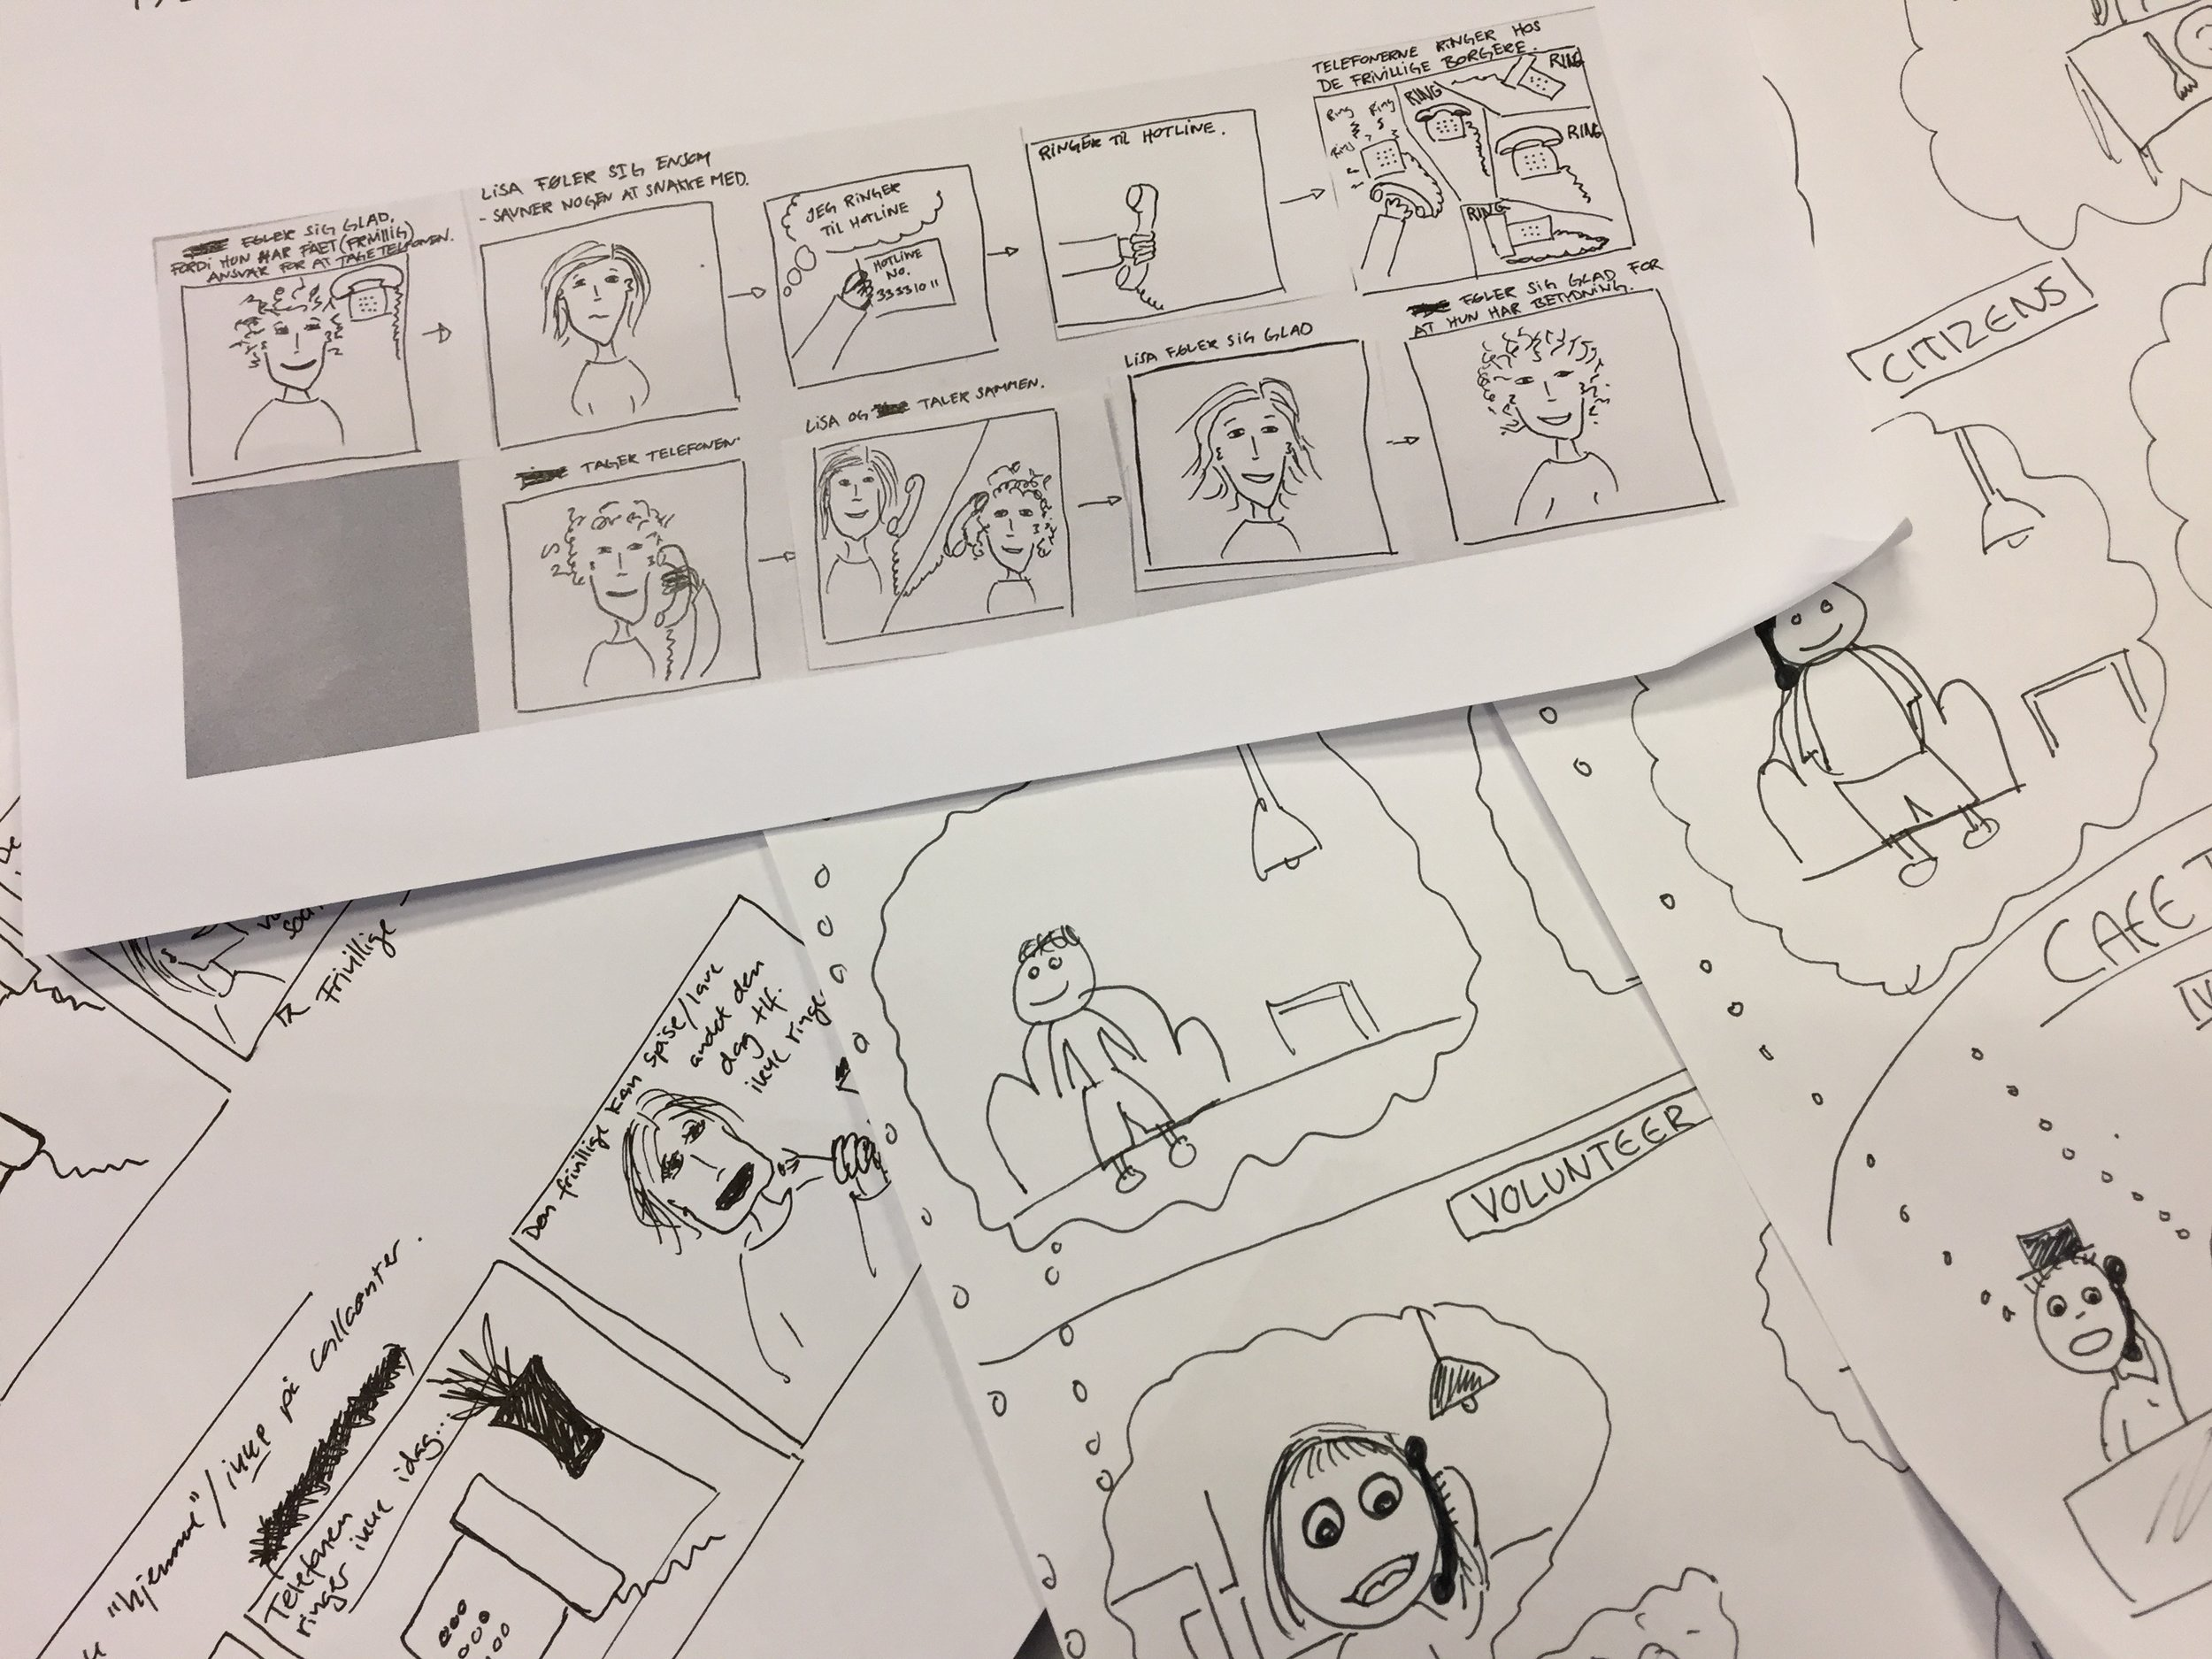 Sketching visual scenarios to be discussed with users and stakeholders.